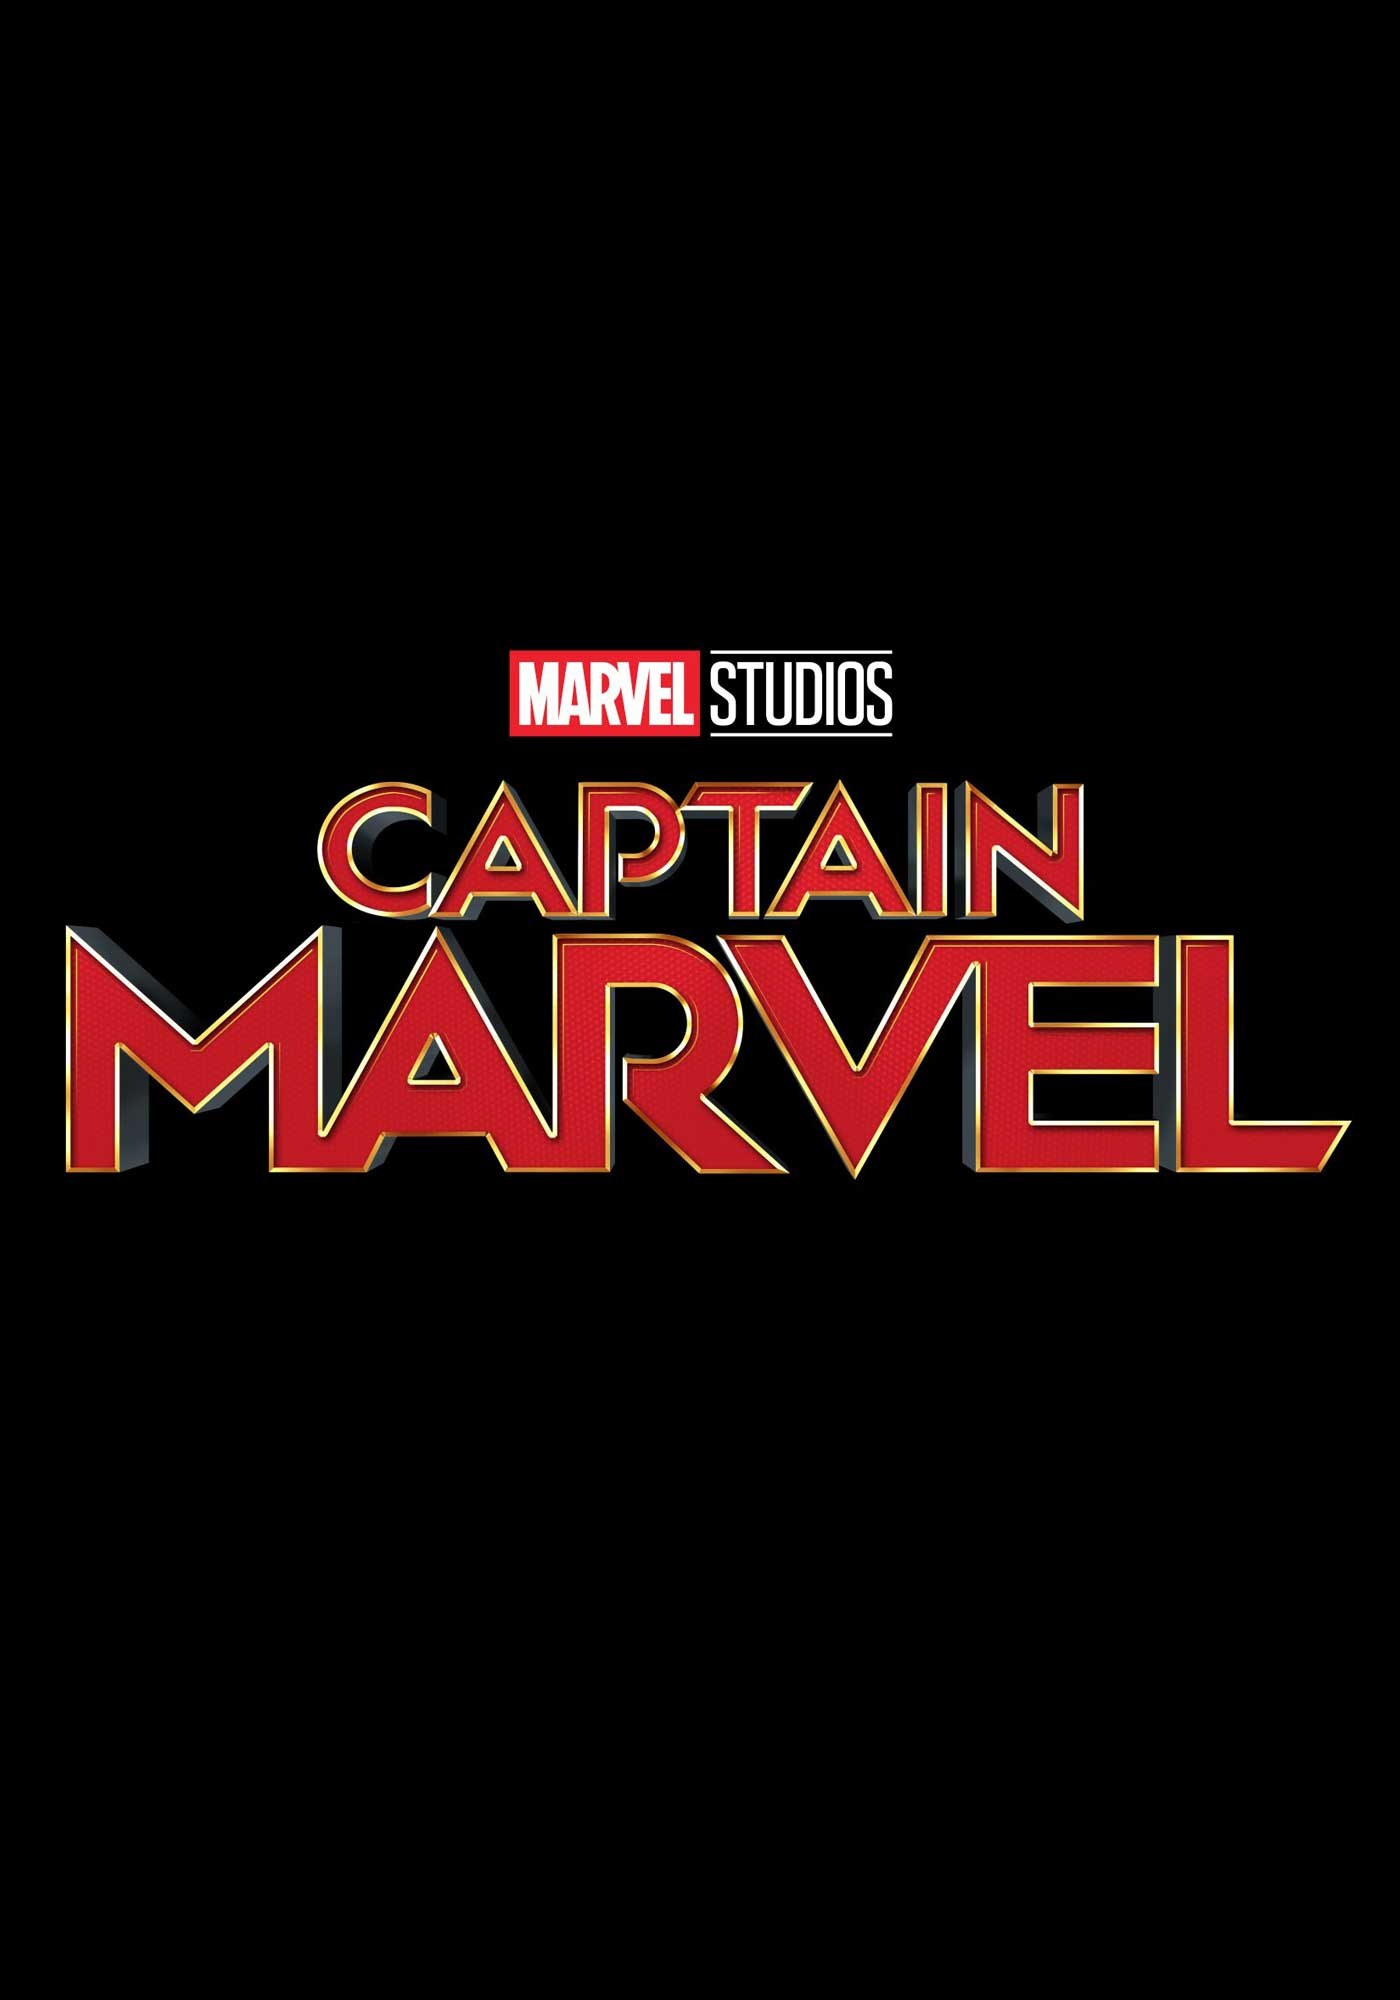 disney marvel studios affiche poster captain marvel